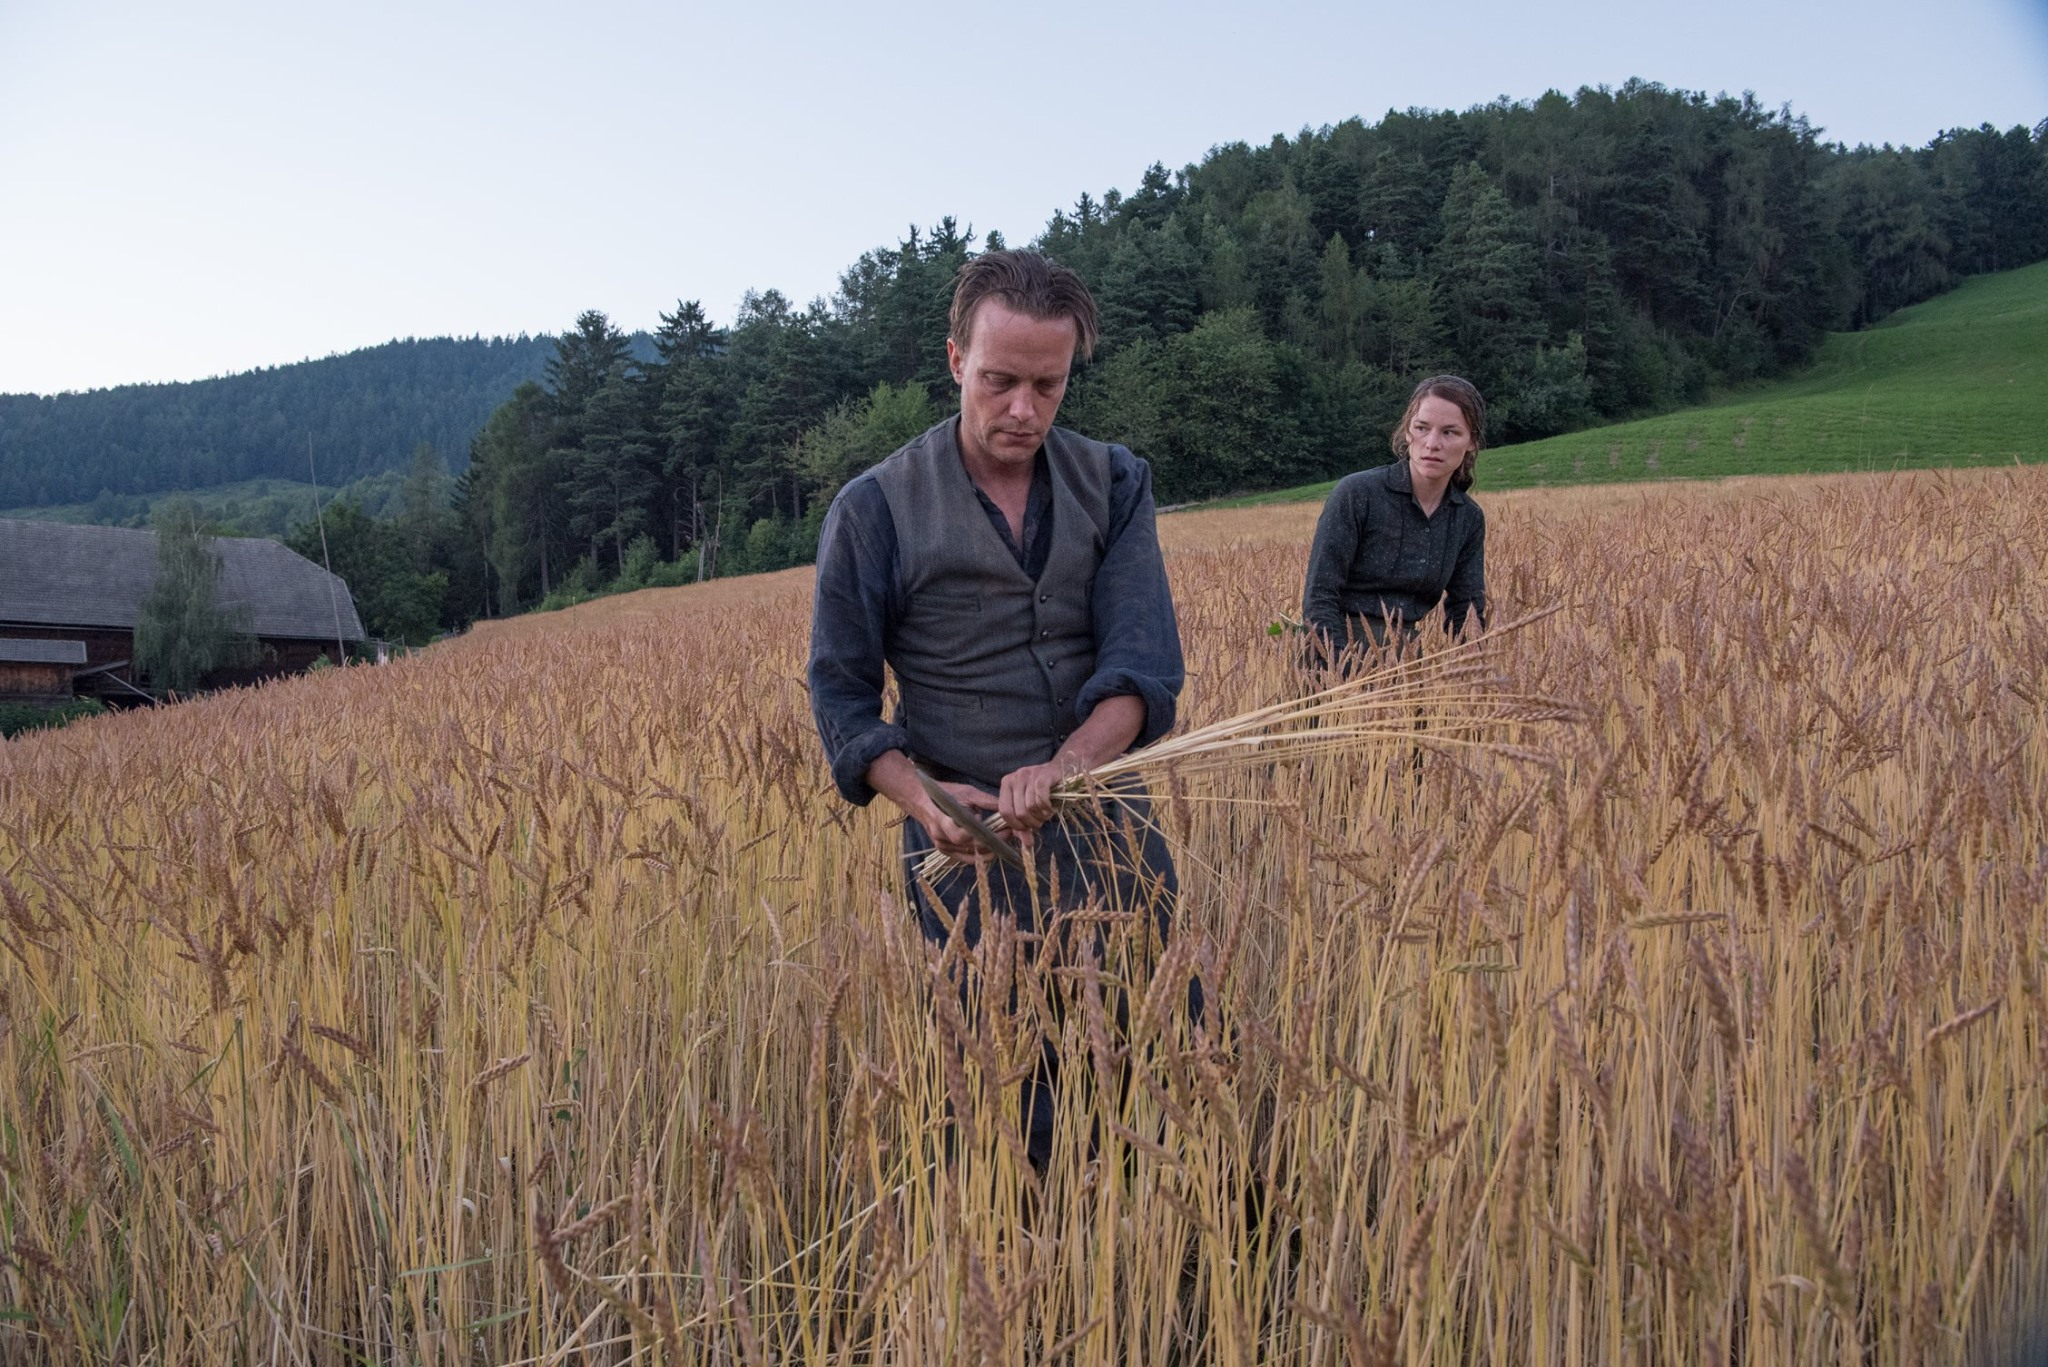 'A Hidden Life' Stars August Diehl & Valerie Pachner on Terrence Malick's Process